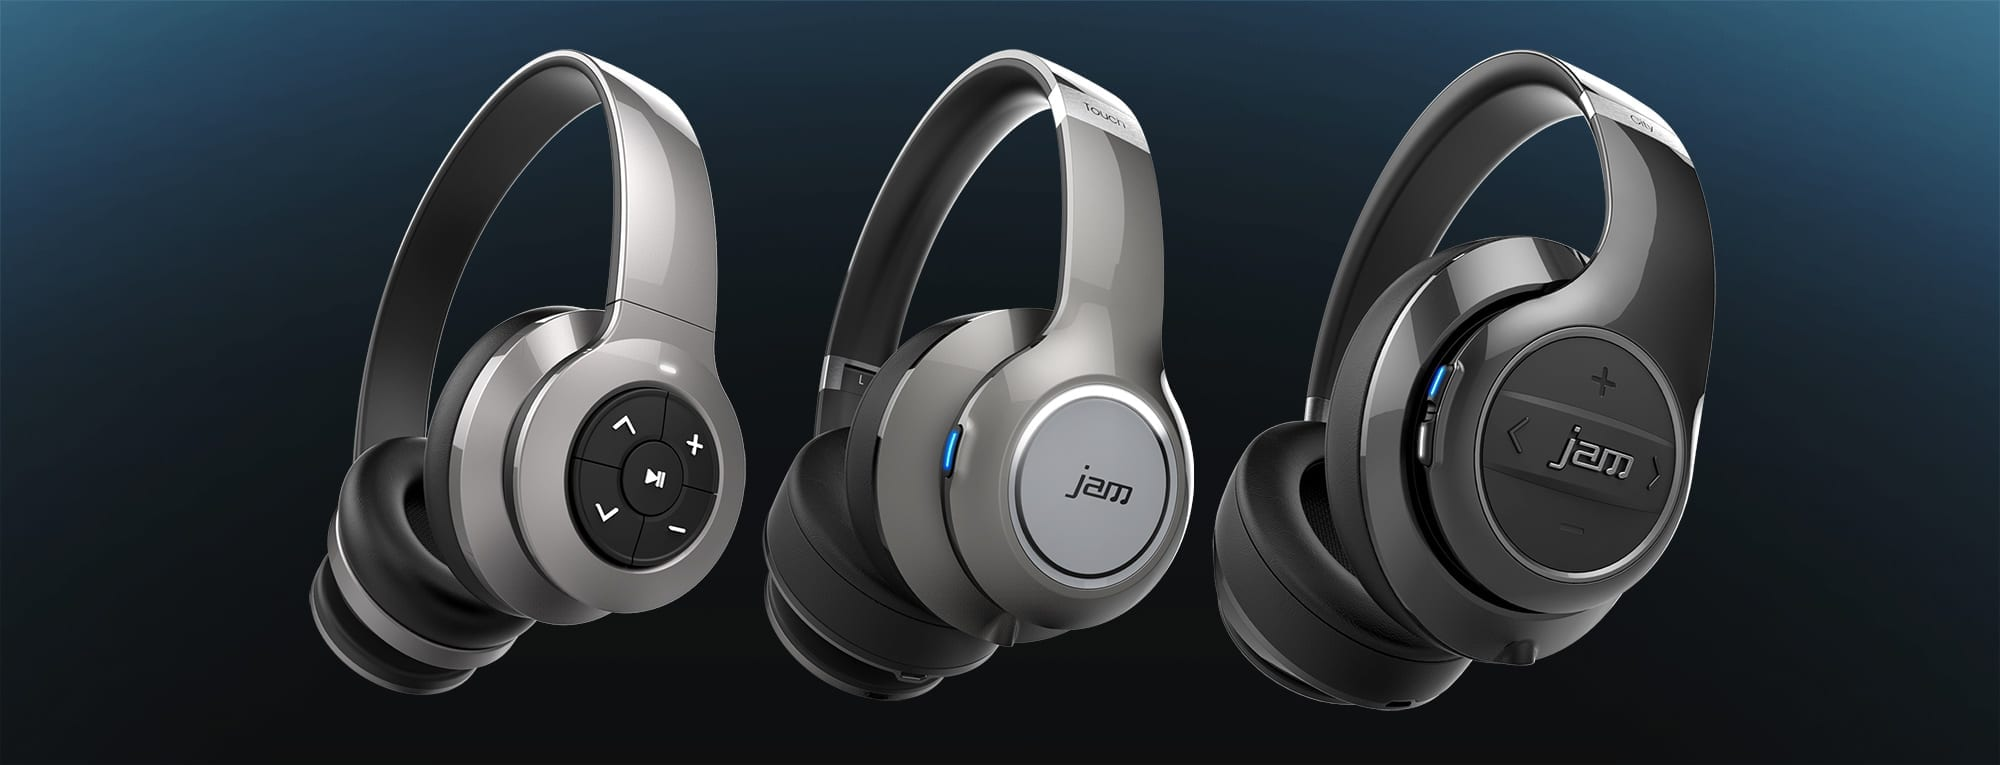 Product design of wireless bluetooth headphones with touch and gesture control interfaces